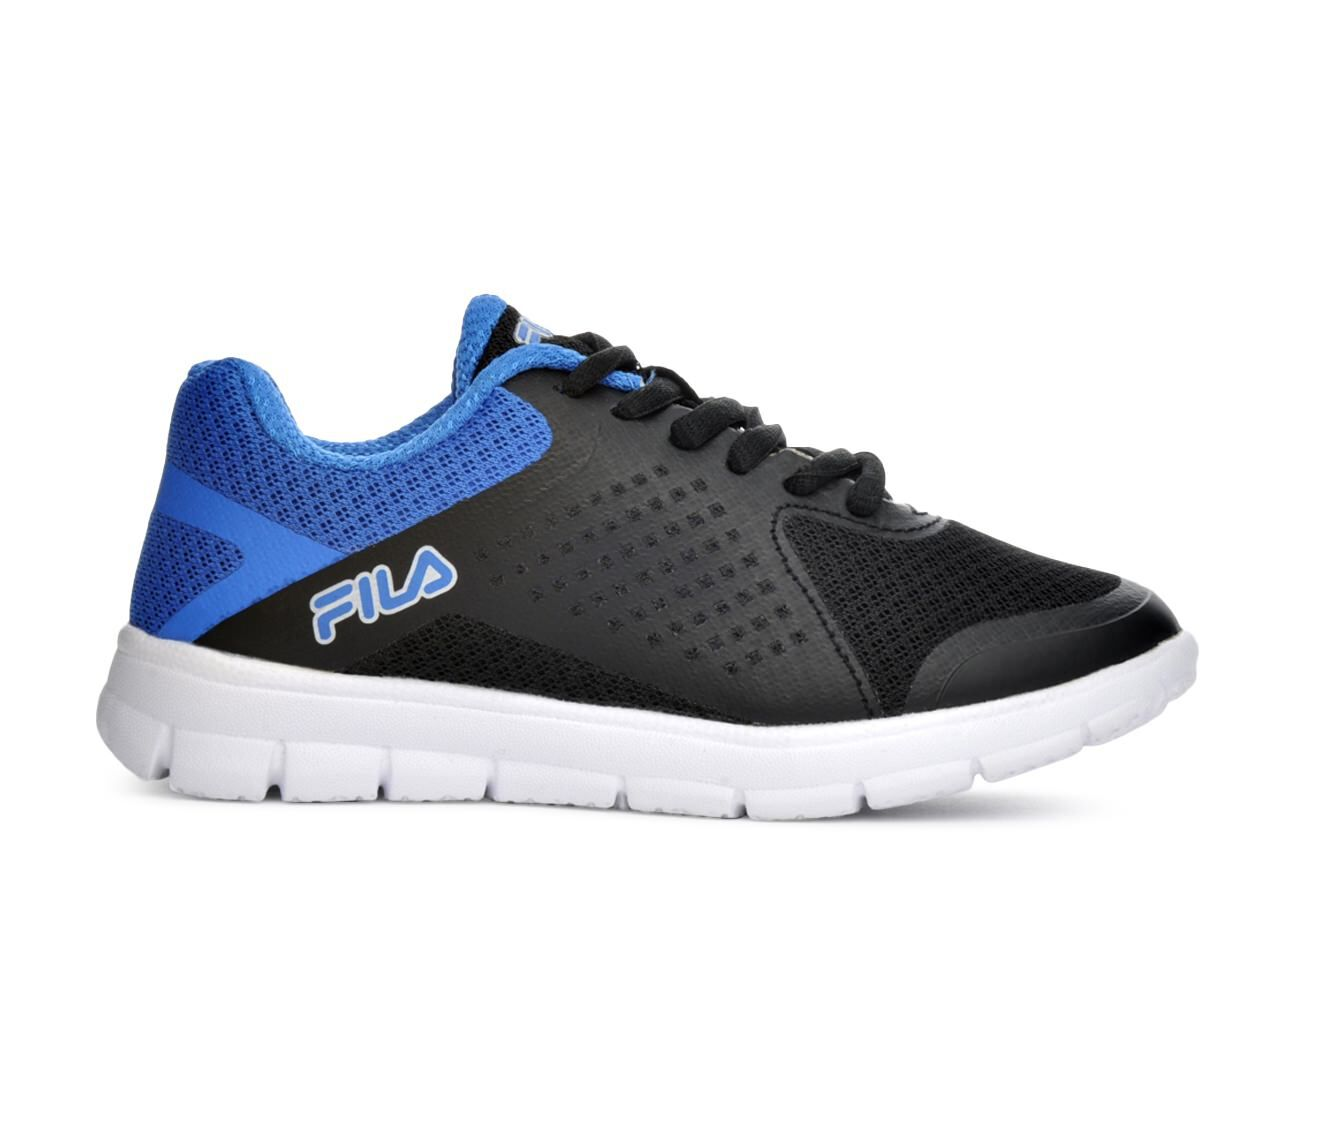 Images Boys Fila Faction 1057 Running Shoes